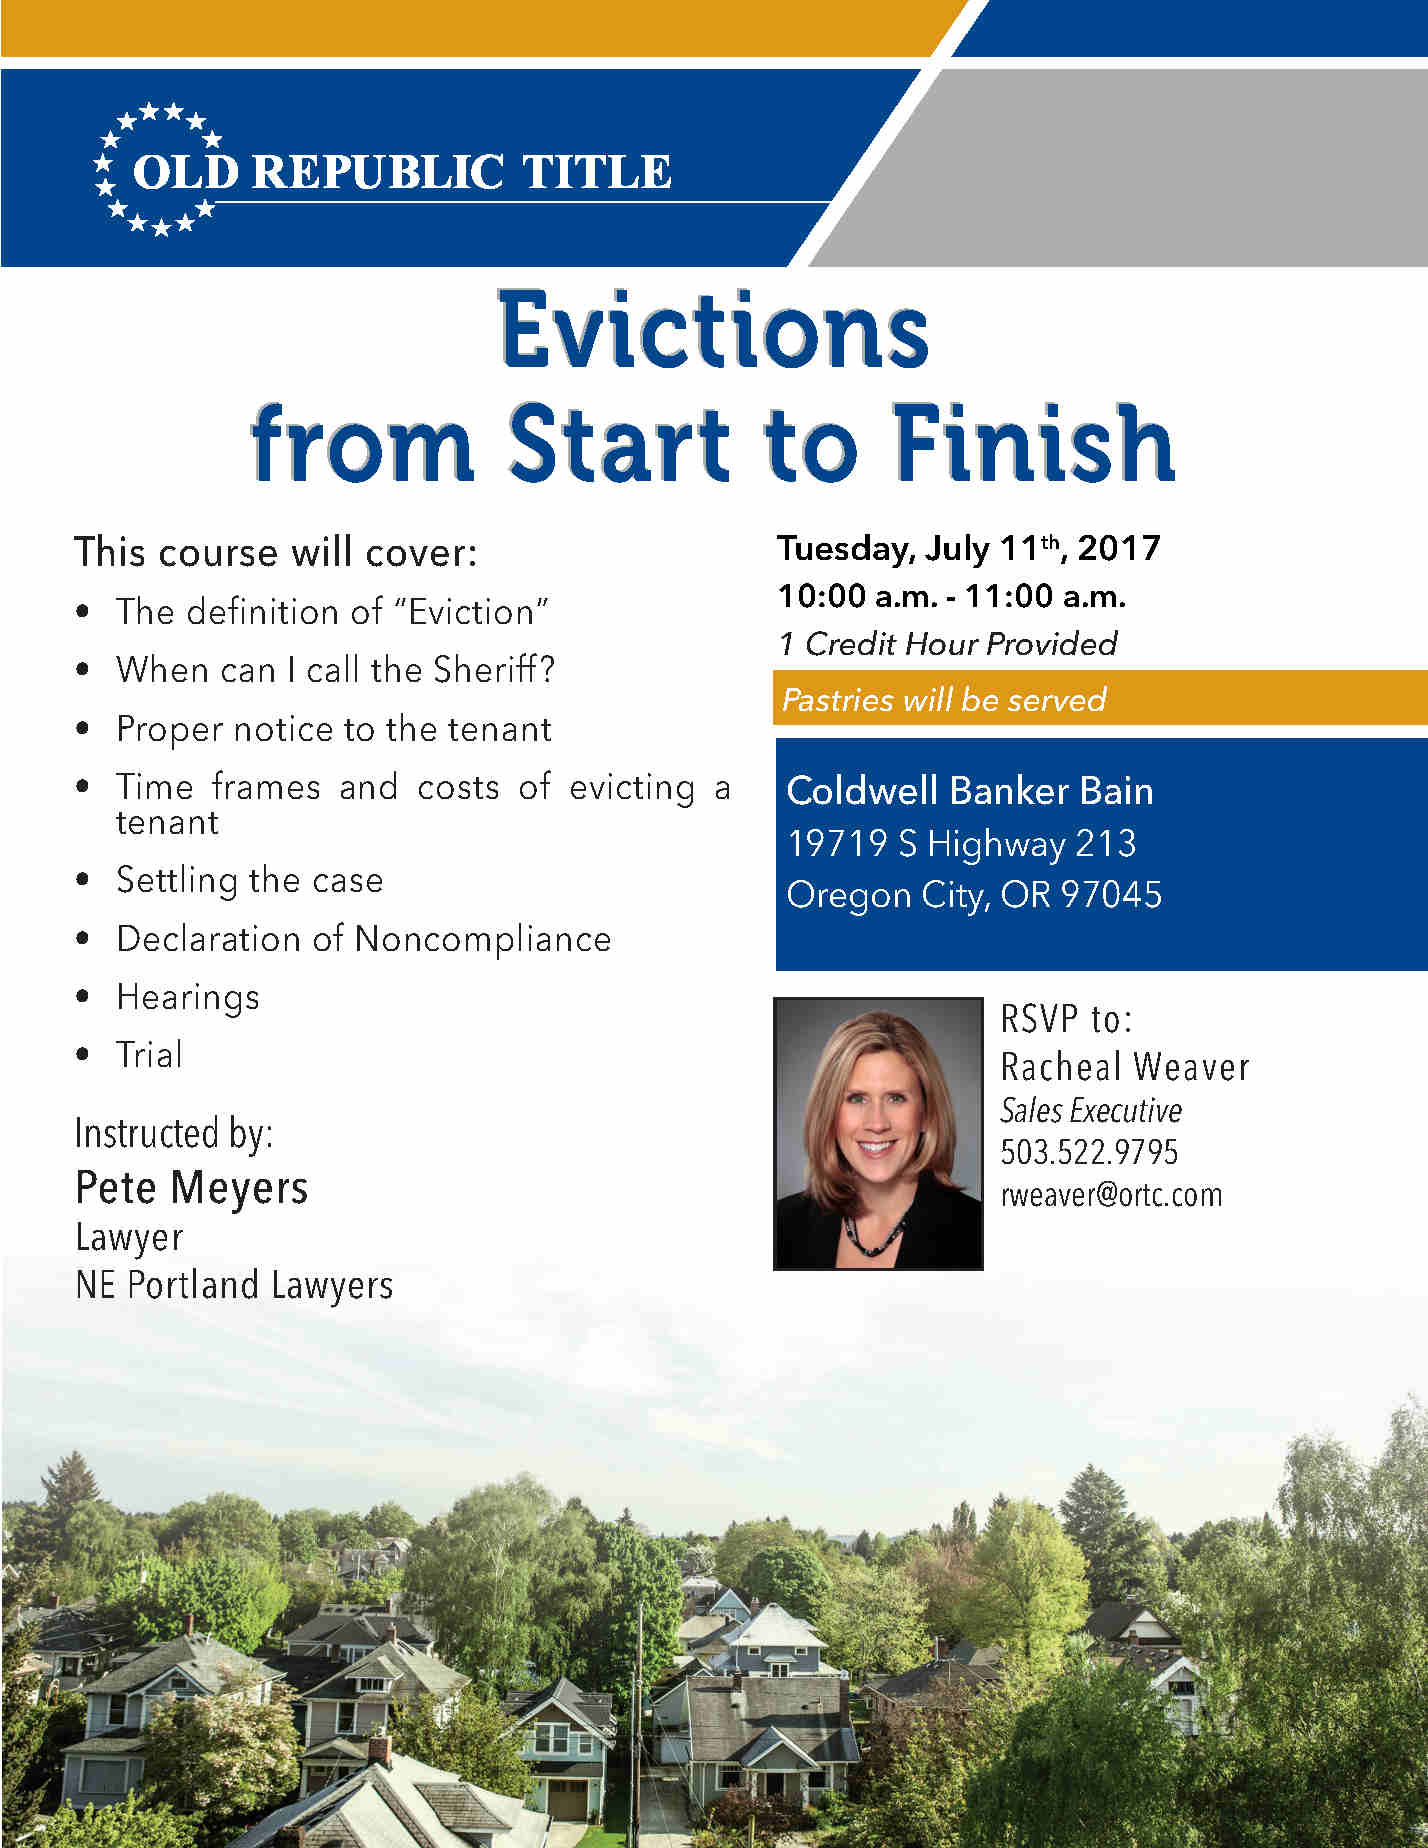 Eviction_Oregon_City_July_11th